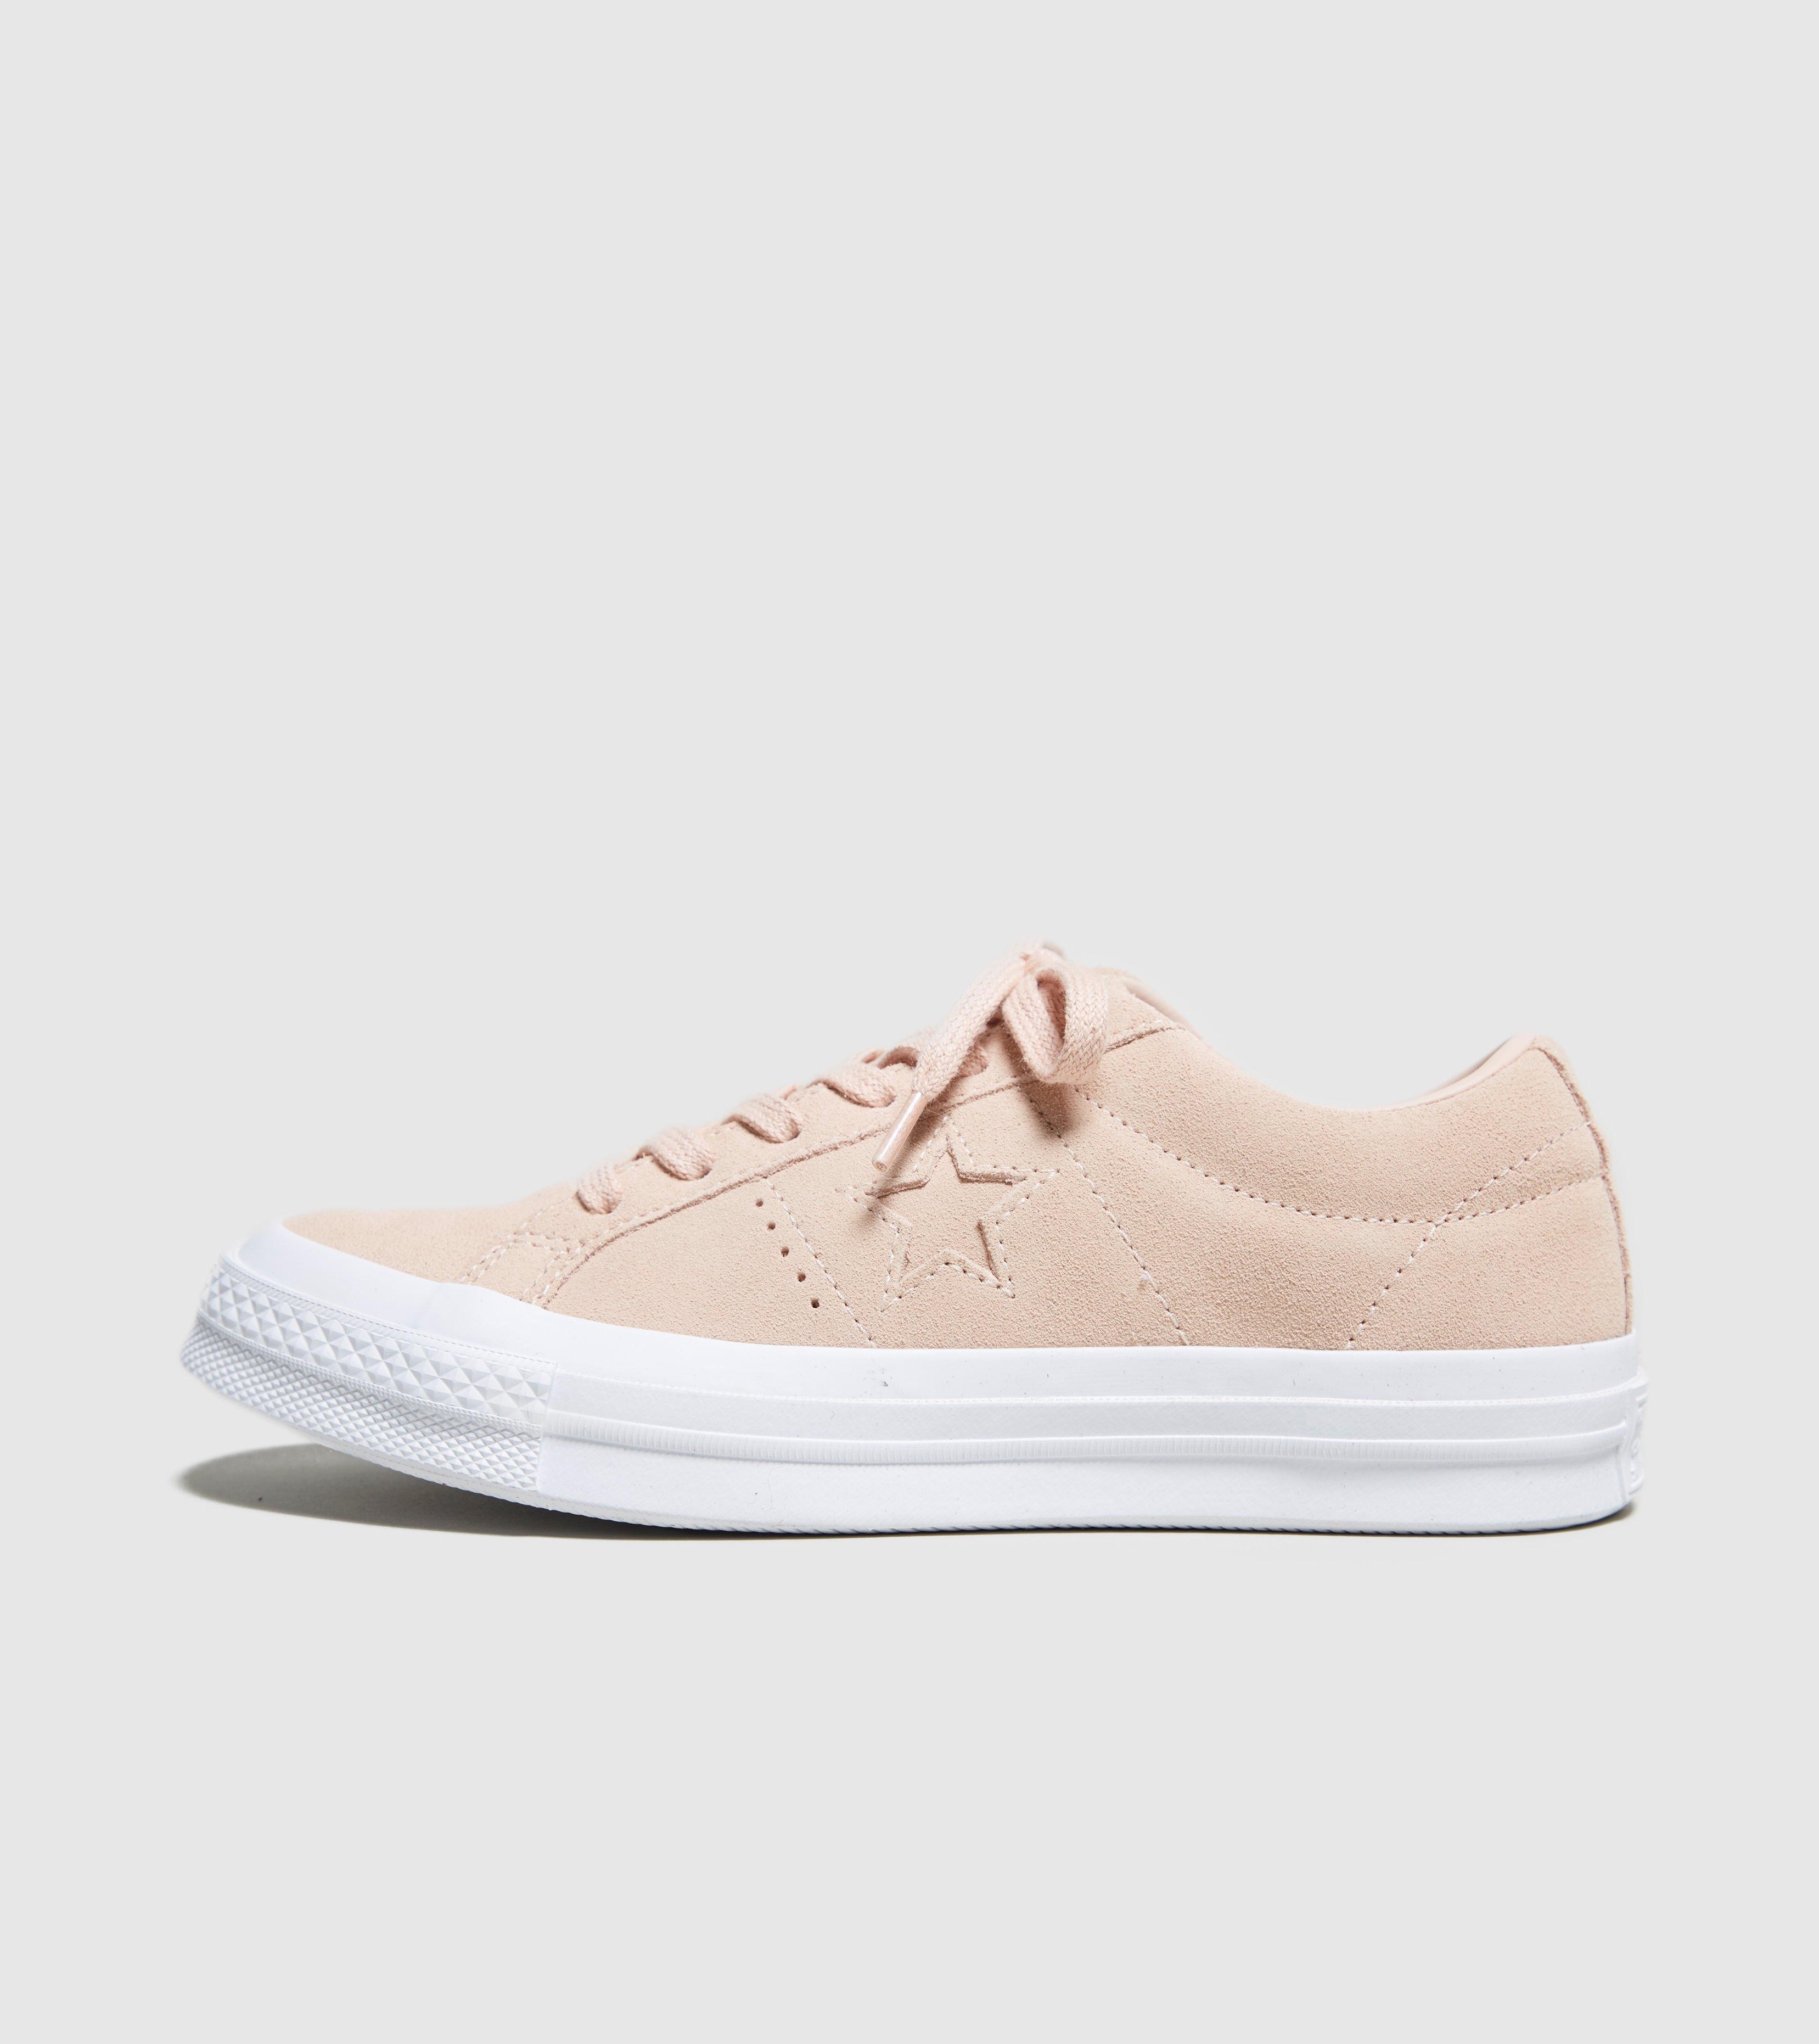 converse single girls If meeting and conversing with women is your goal, then learning how to overcome social obstacles is essential these include shyness, or simply not having anything interesting to say.